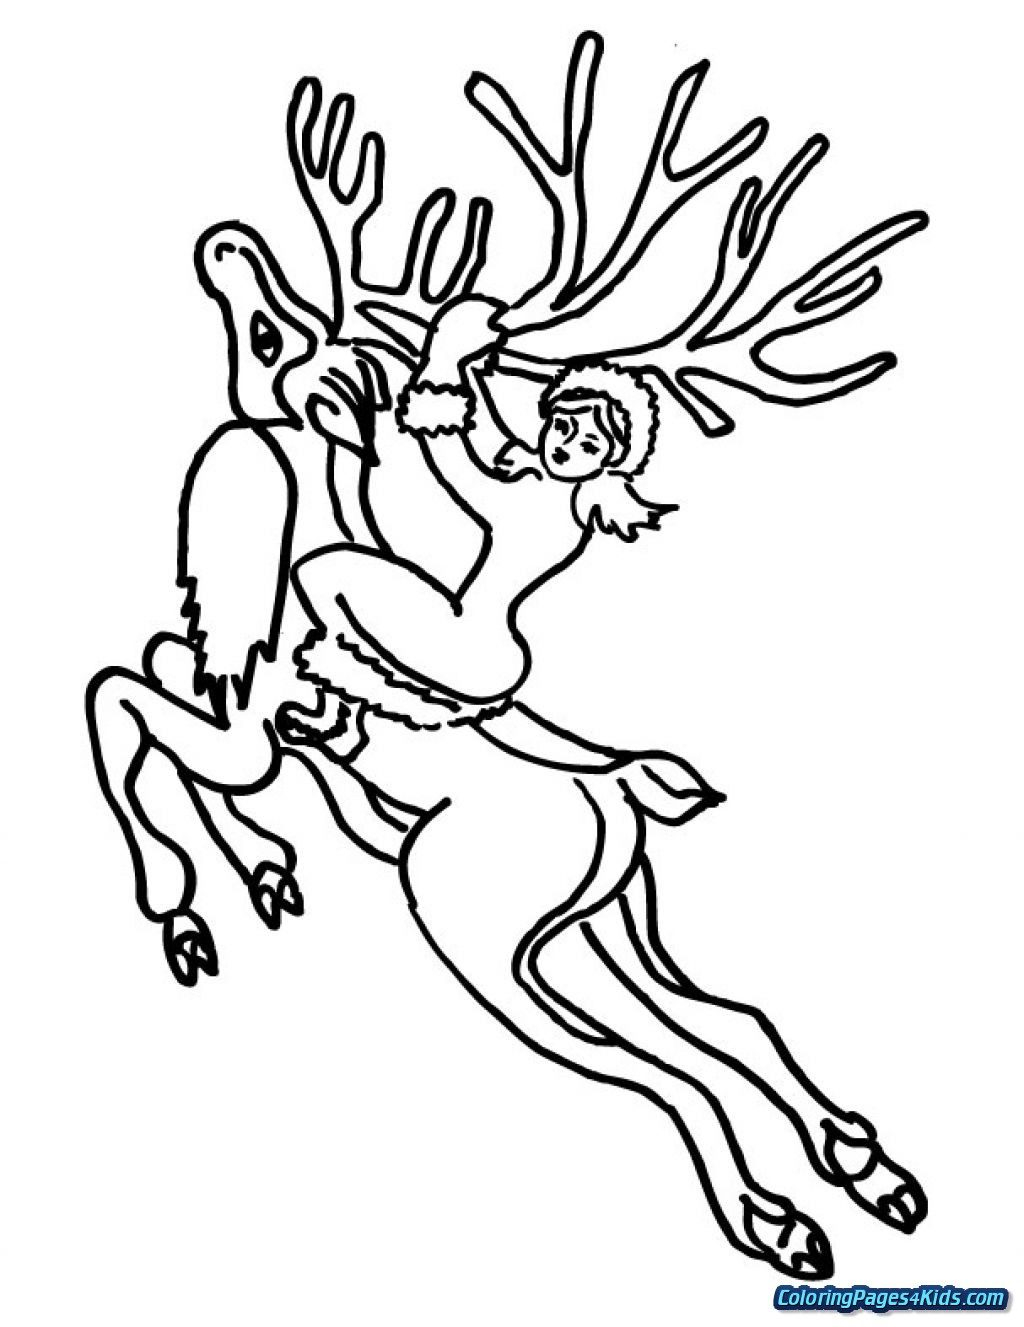 Rudolph Coloring Page Coloring Pages Rudolph The Red Nosed Reindeer ...